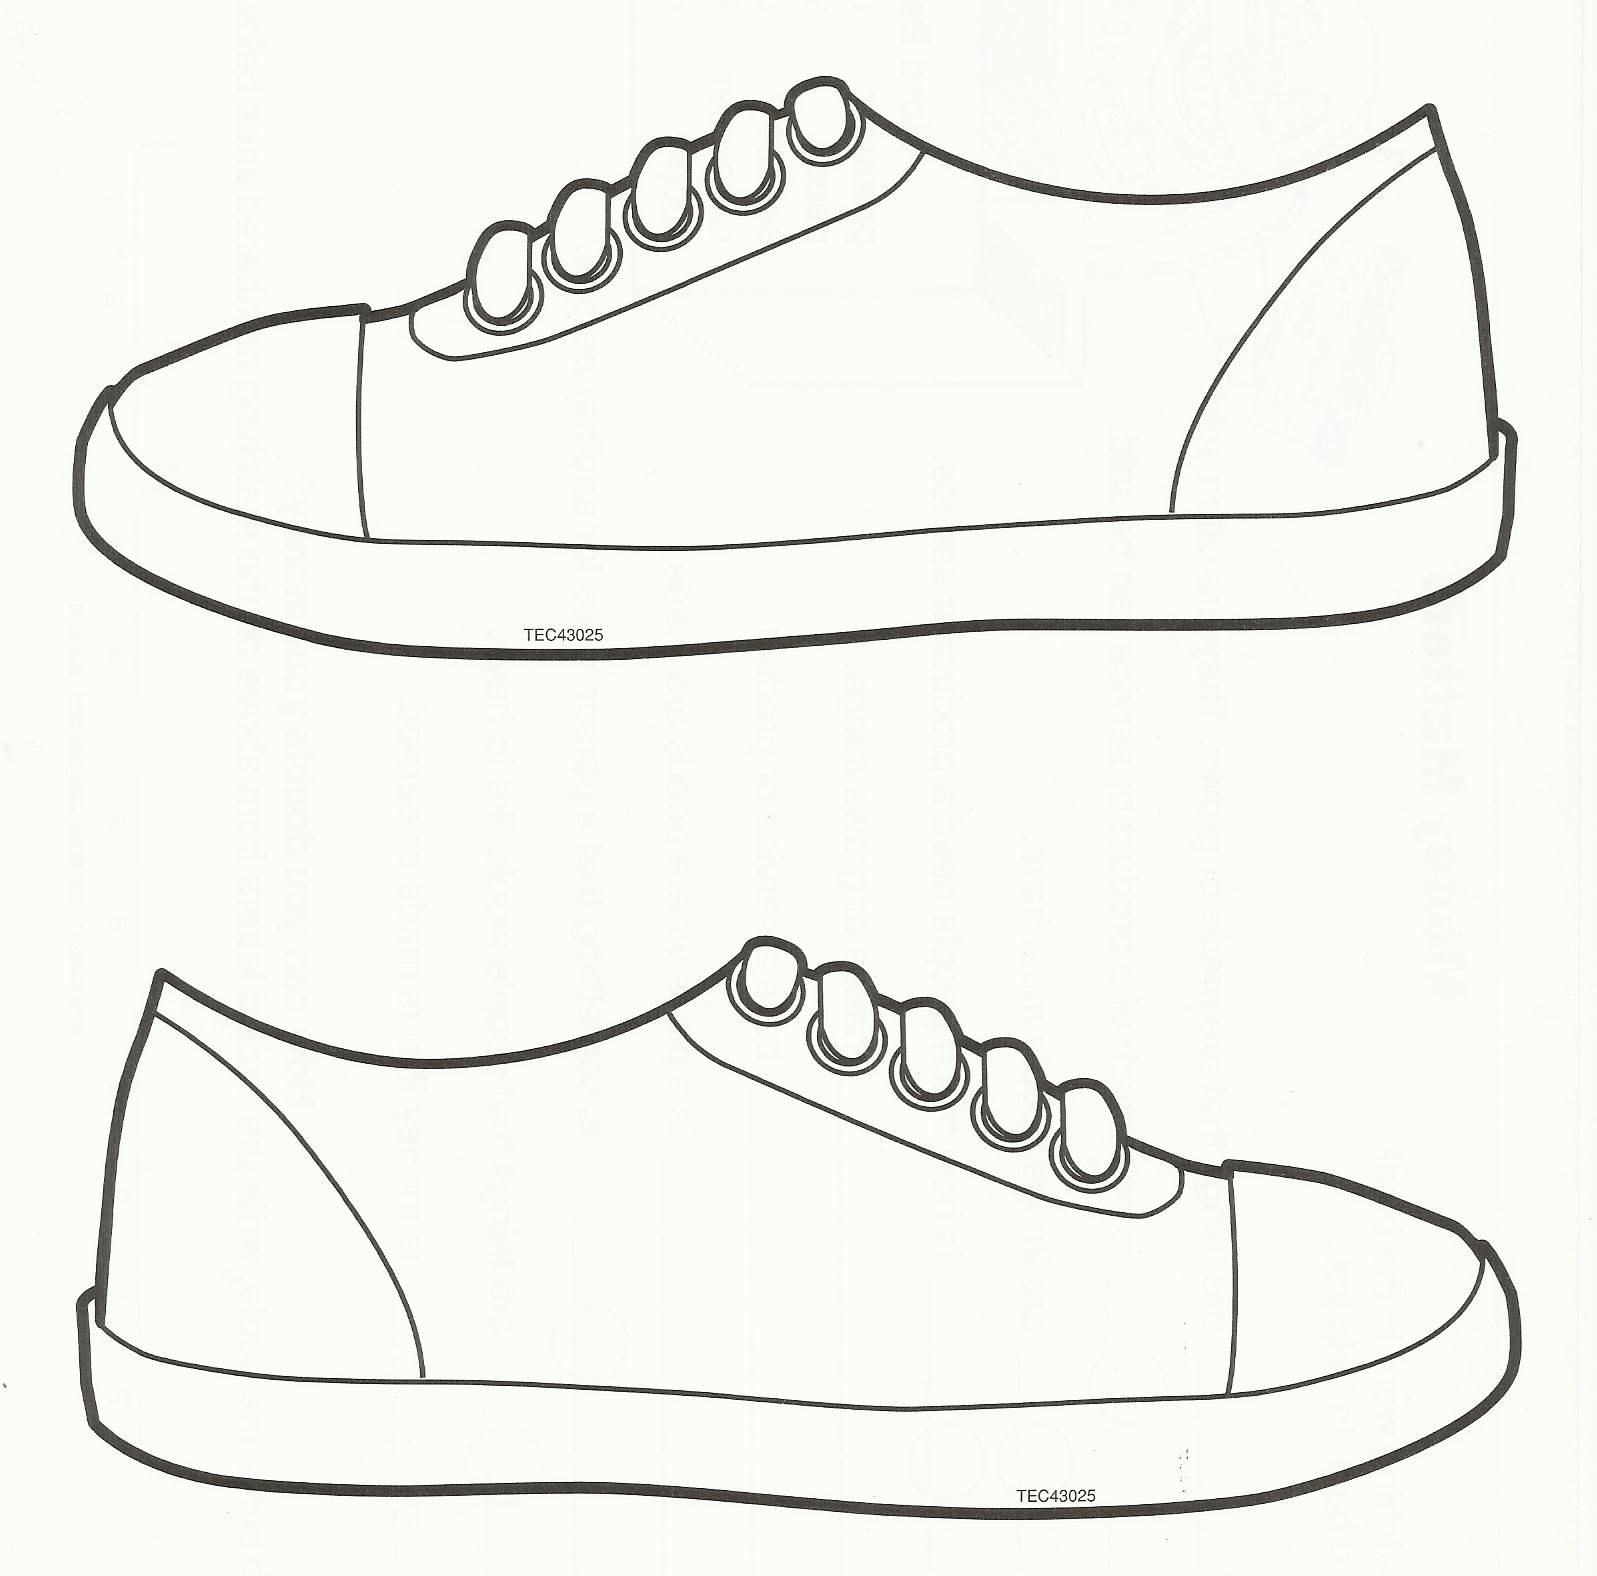 coloring page shoes - 1 597 1 576 pixels sub plans pinterest